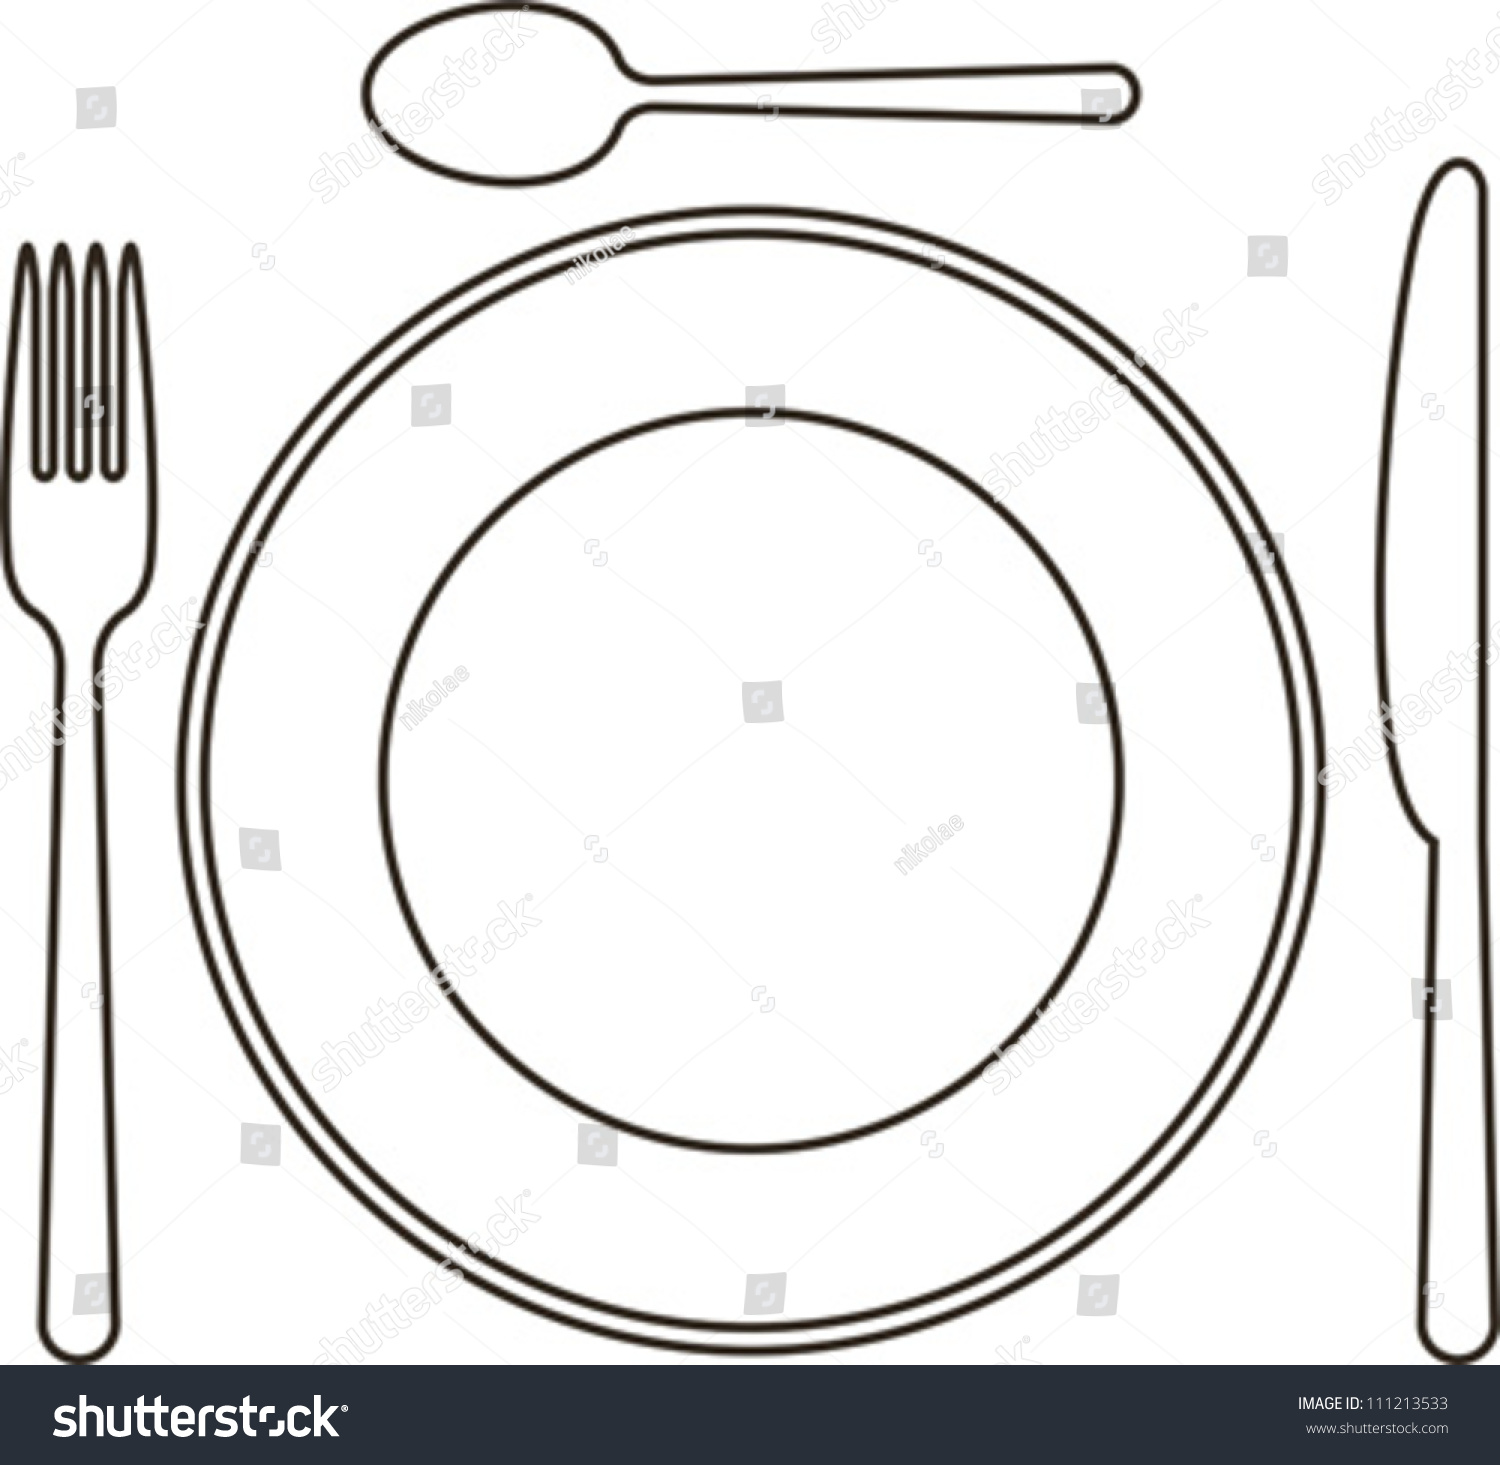 Place Setting Plate Knife Spoon Fork Stock Vector  : stock vector place setting with plate knife spoon and fork 111213533 from www.shutterstock.com size 1500 x 1465 jpeg 300kB